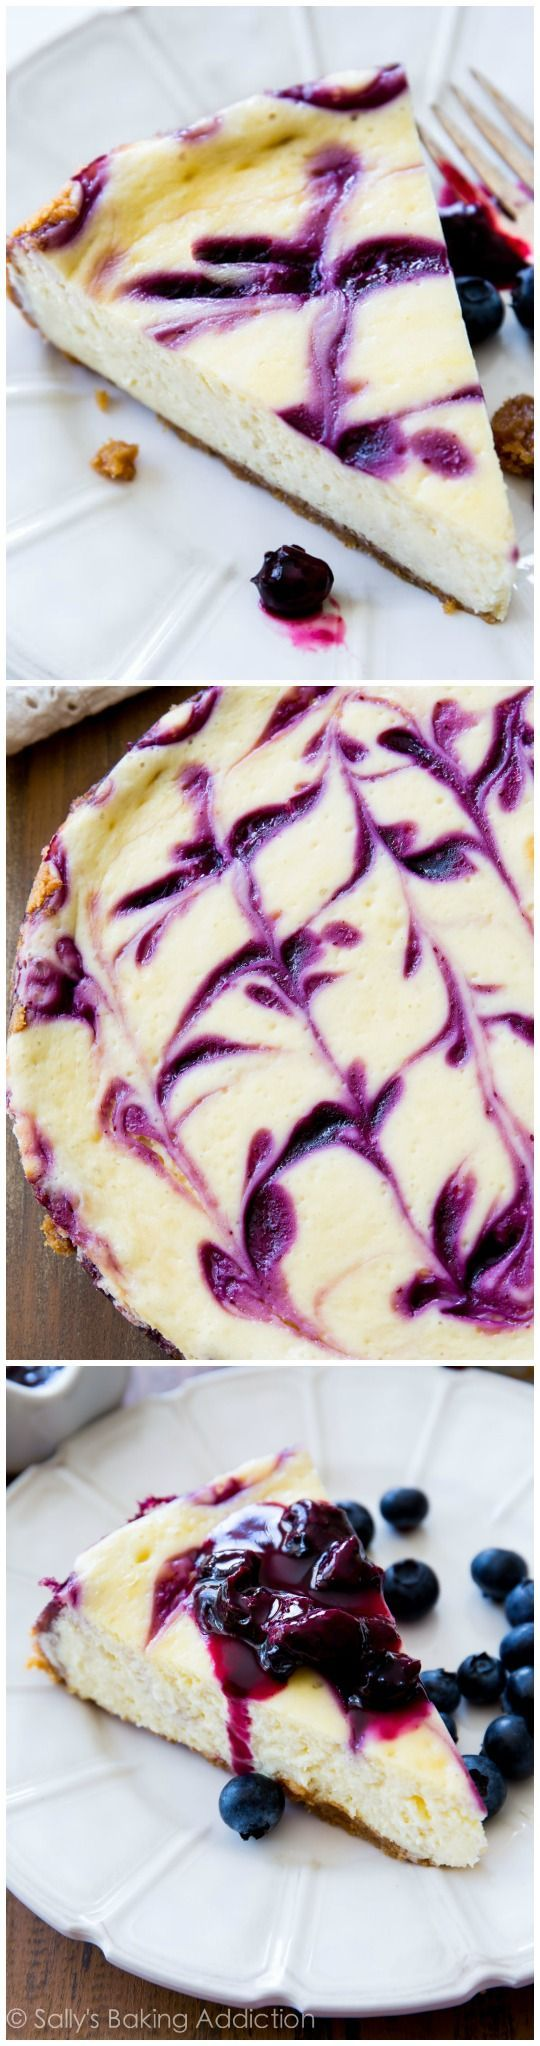 Ultra creamy homemade cheesecake swirled with sweet blueberry sauce. All on top of my favorite buttery graham cracker crust.